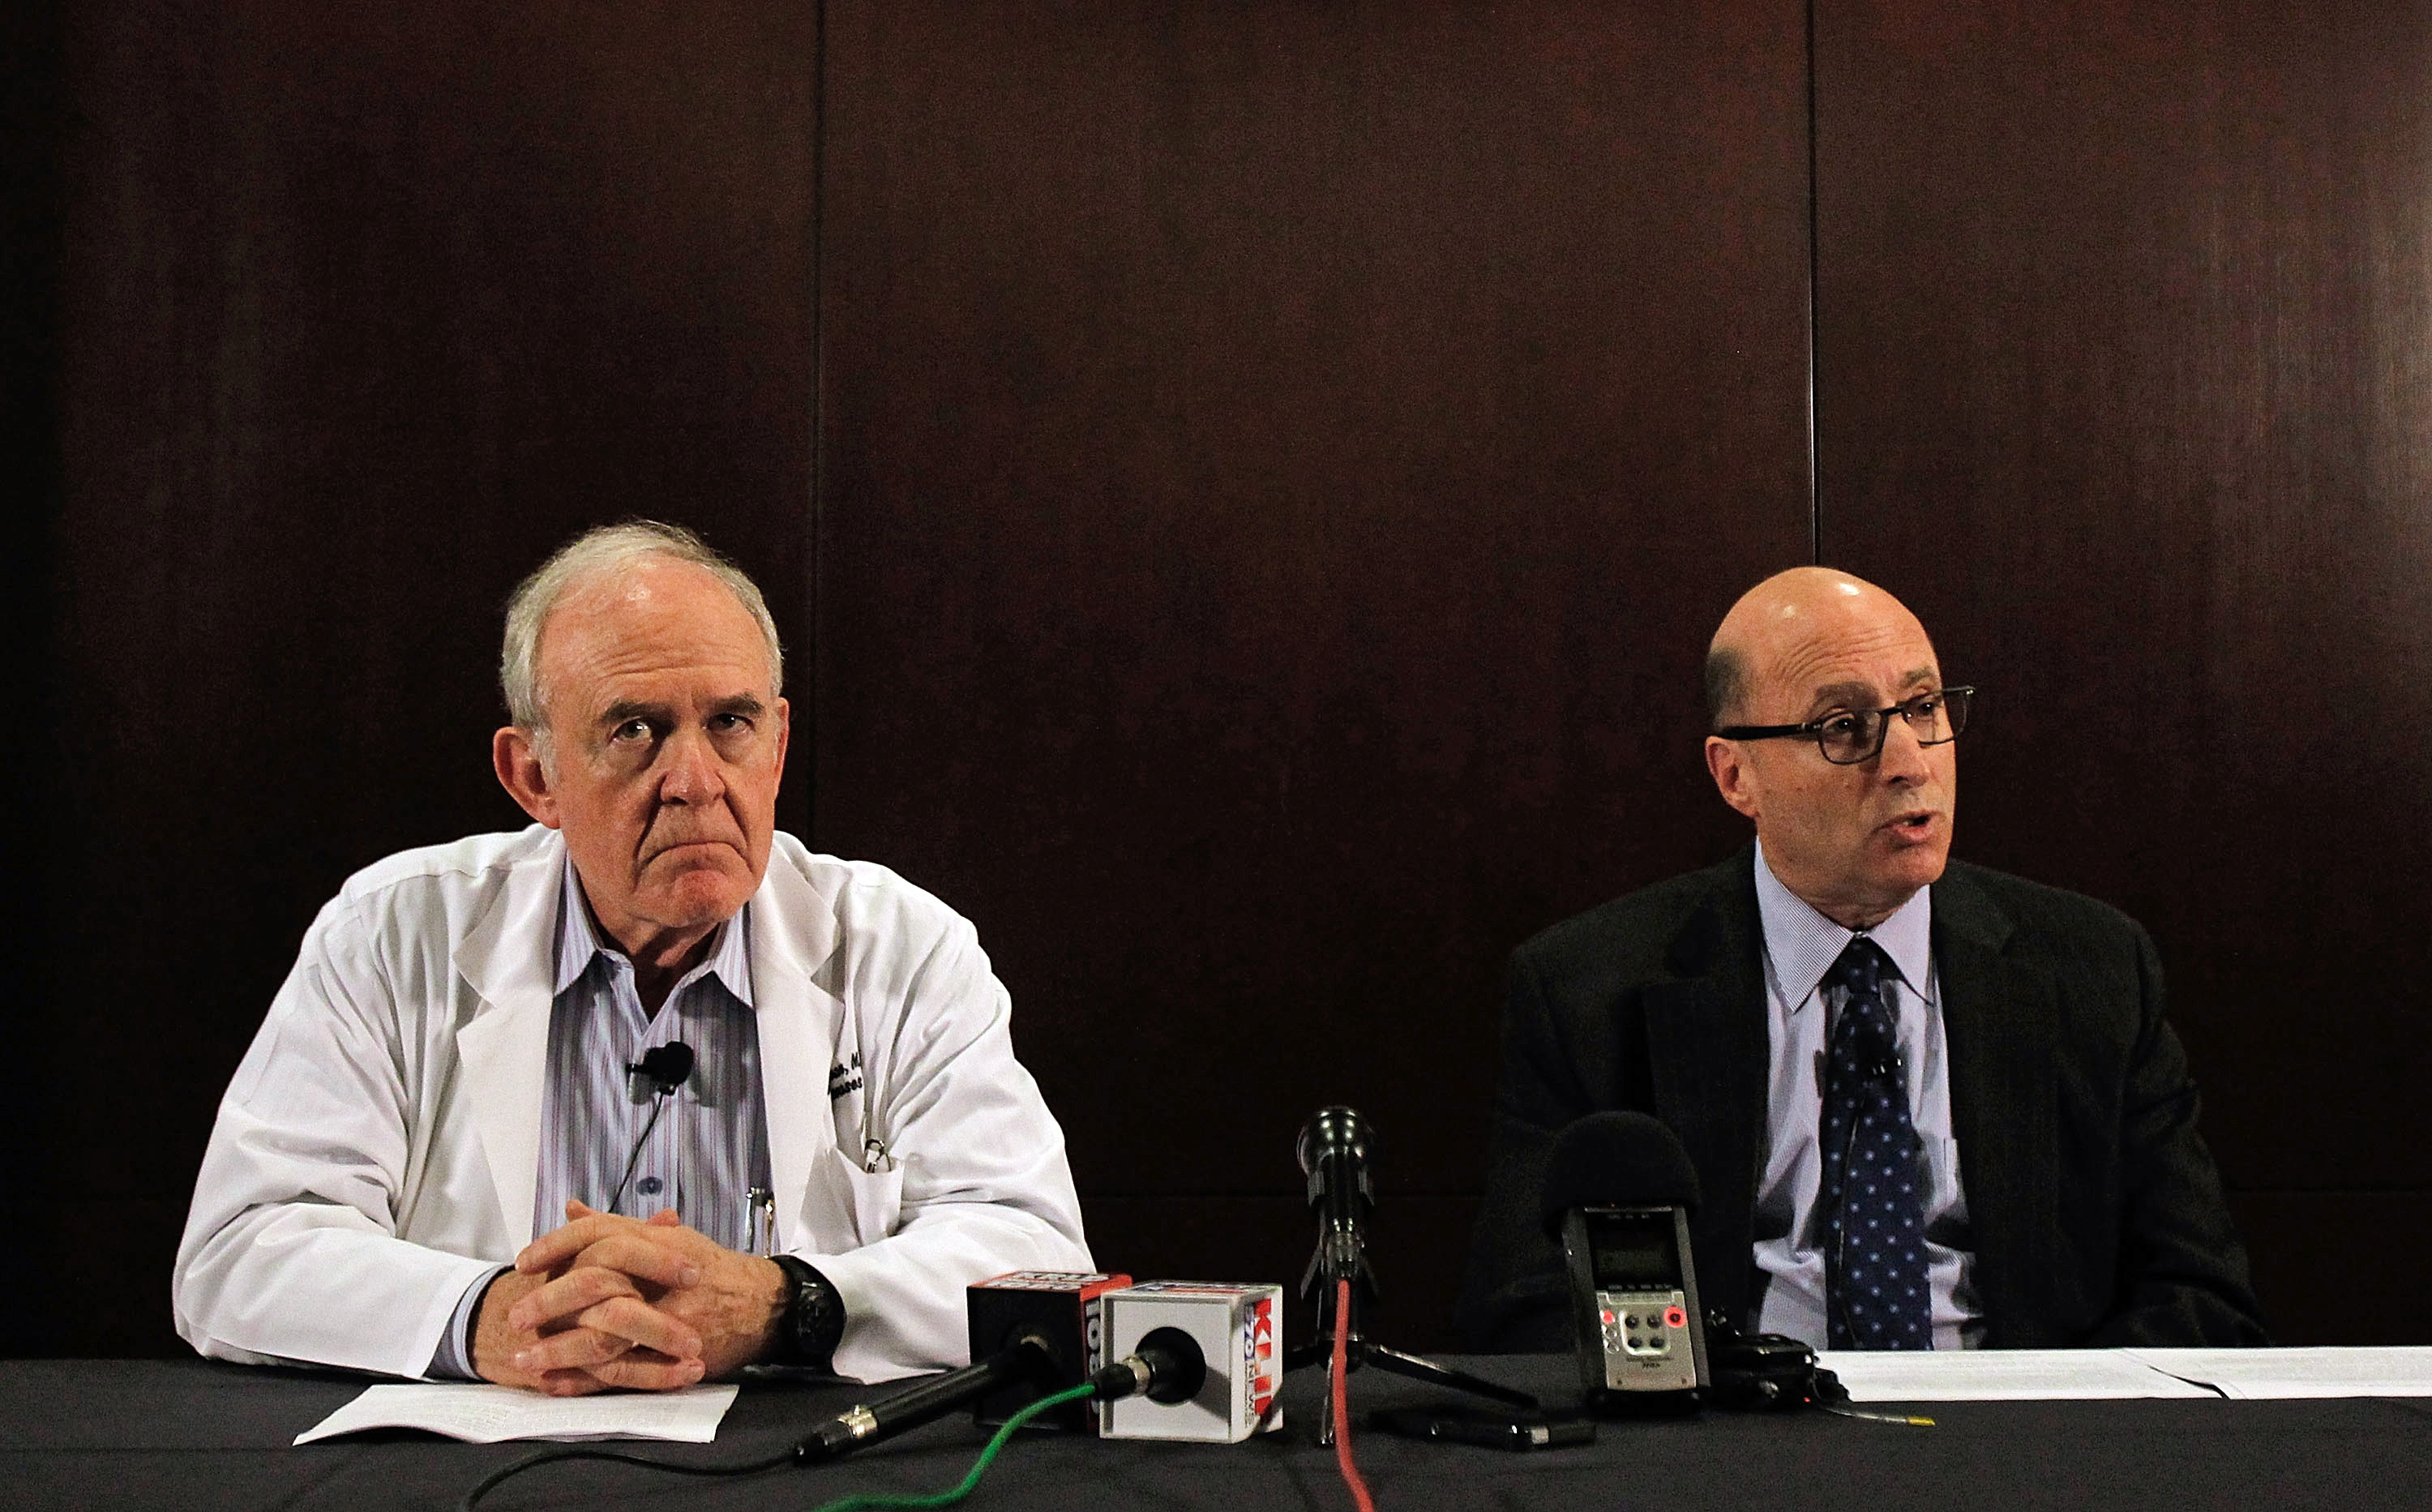 Dr. Edward Goodman, epidemiologist at Texas Health Presbyterian Hospital Dallas, and Dr. Mark Lester, Southeast Zone clinical leader for Texas Health Resources, answer questions during a media conference at Texas Health Presbyterian Hospital Dallas where a patient has been diagnosed with the Ebola virus on Sept. 30, 2014 in Dallas.